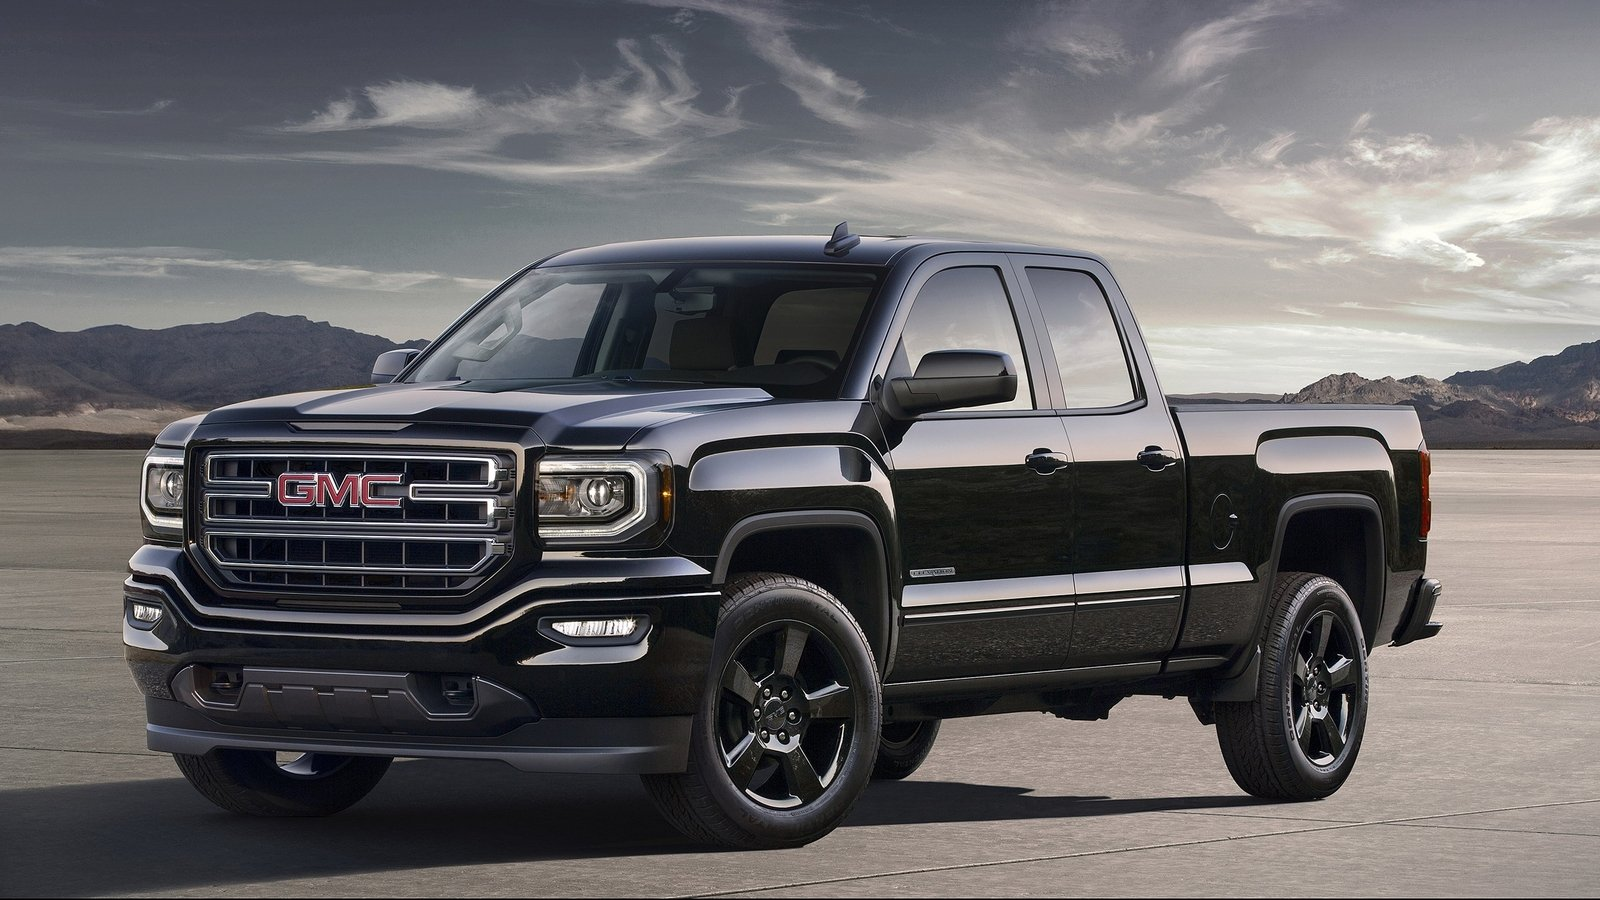 2016 GMC Sierra Elevation Edition Review - Top Speed